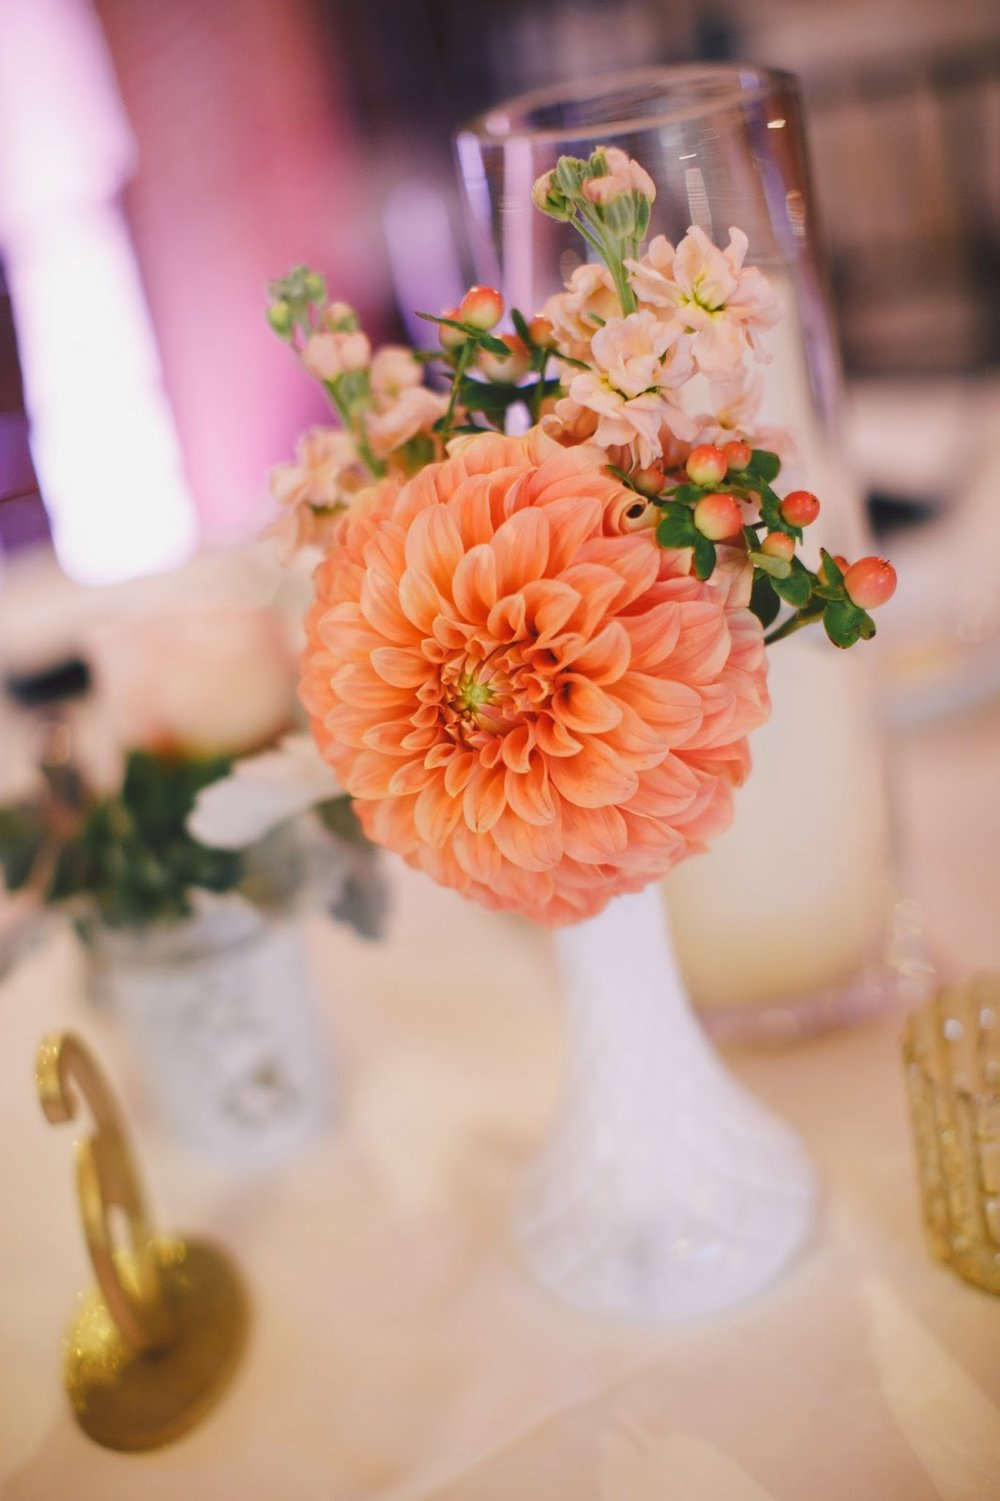 les fleurs : red lion inn : jess jolin photography : hob nail vintage glass vase : dahlia, garden rose, stock, dusty miller : peach, coral, sea foam green : small collection of vases for the tables